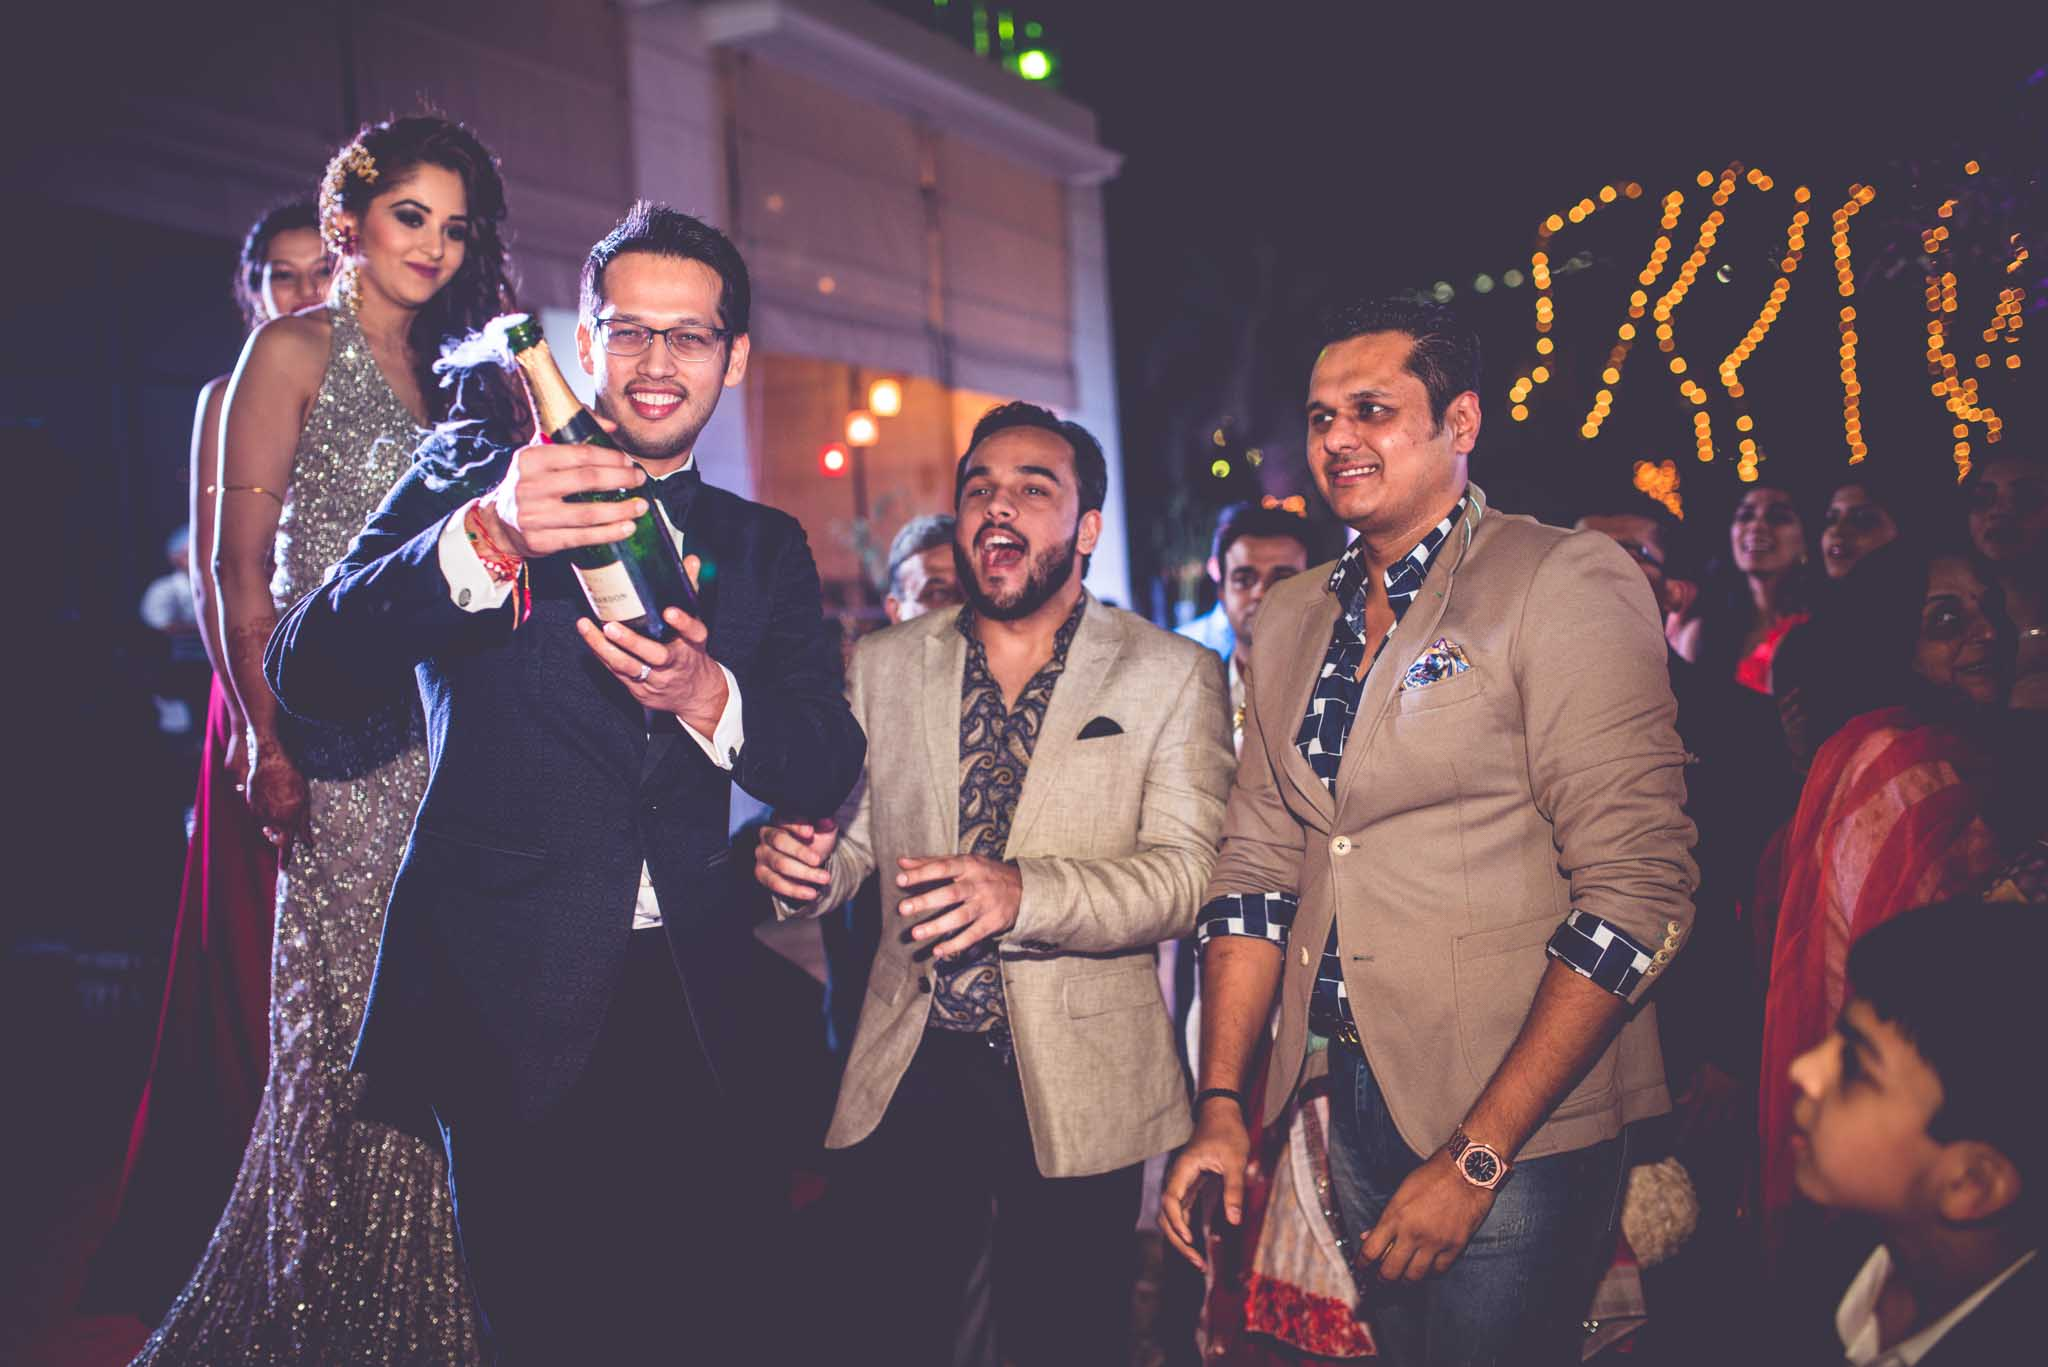 StRegis-Palladium-Mumbai-Candid-Wedding-Photography-7